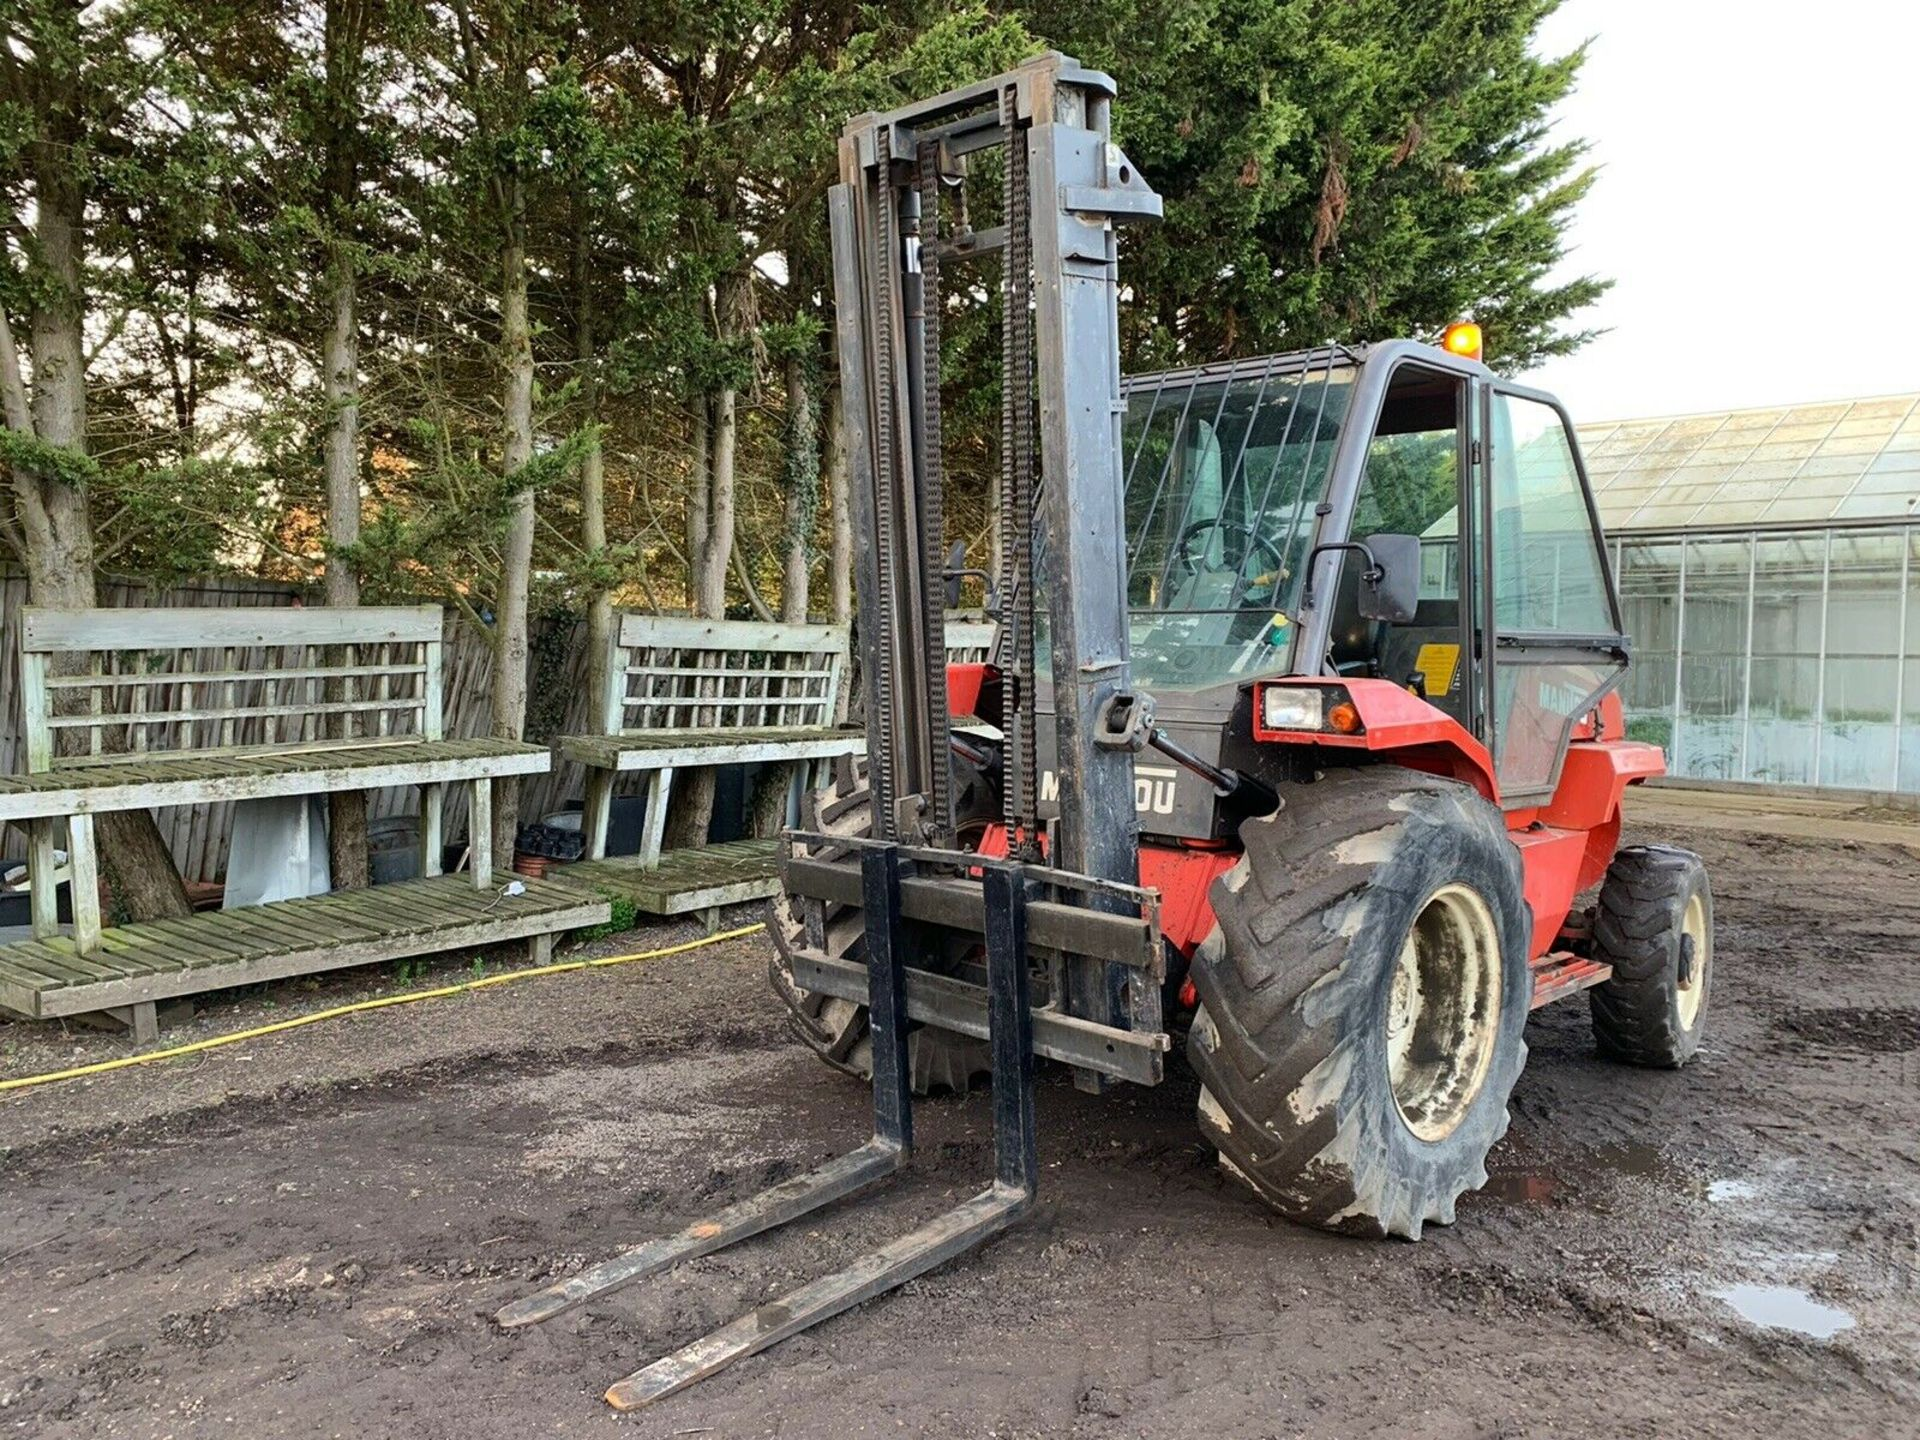 Lot 103 - Manitou M26-4 Rough Terrain Forklift Truck